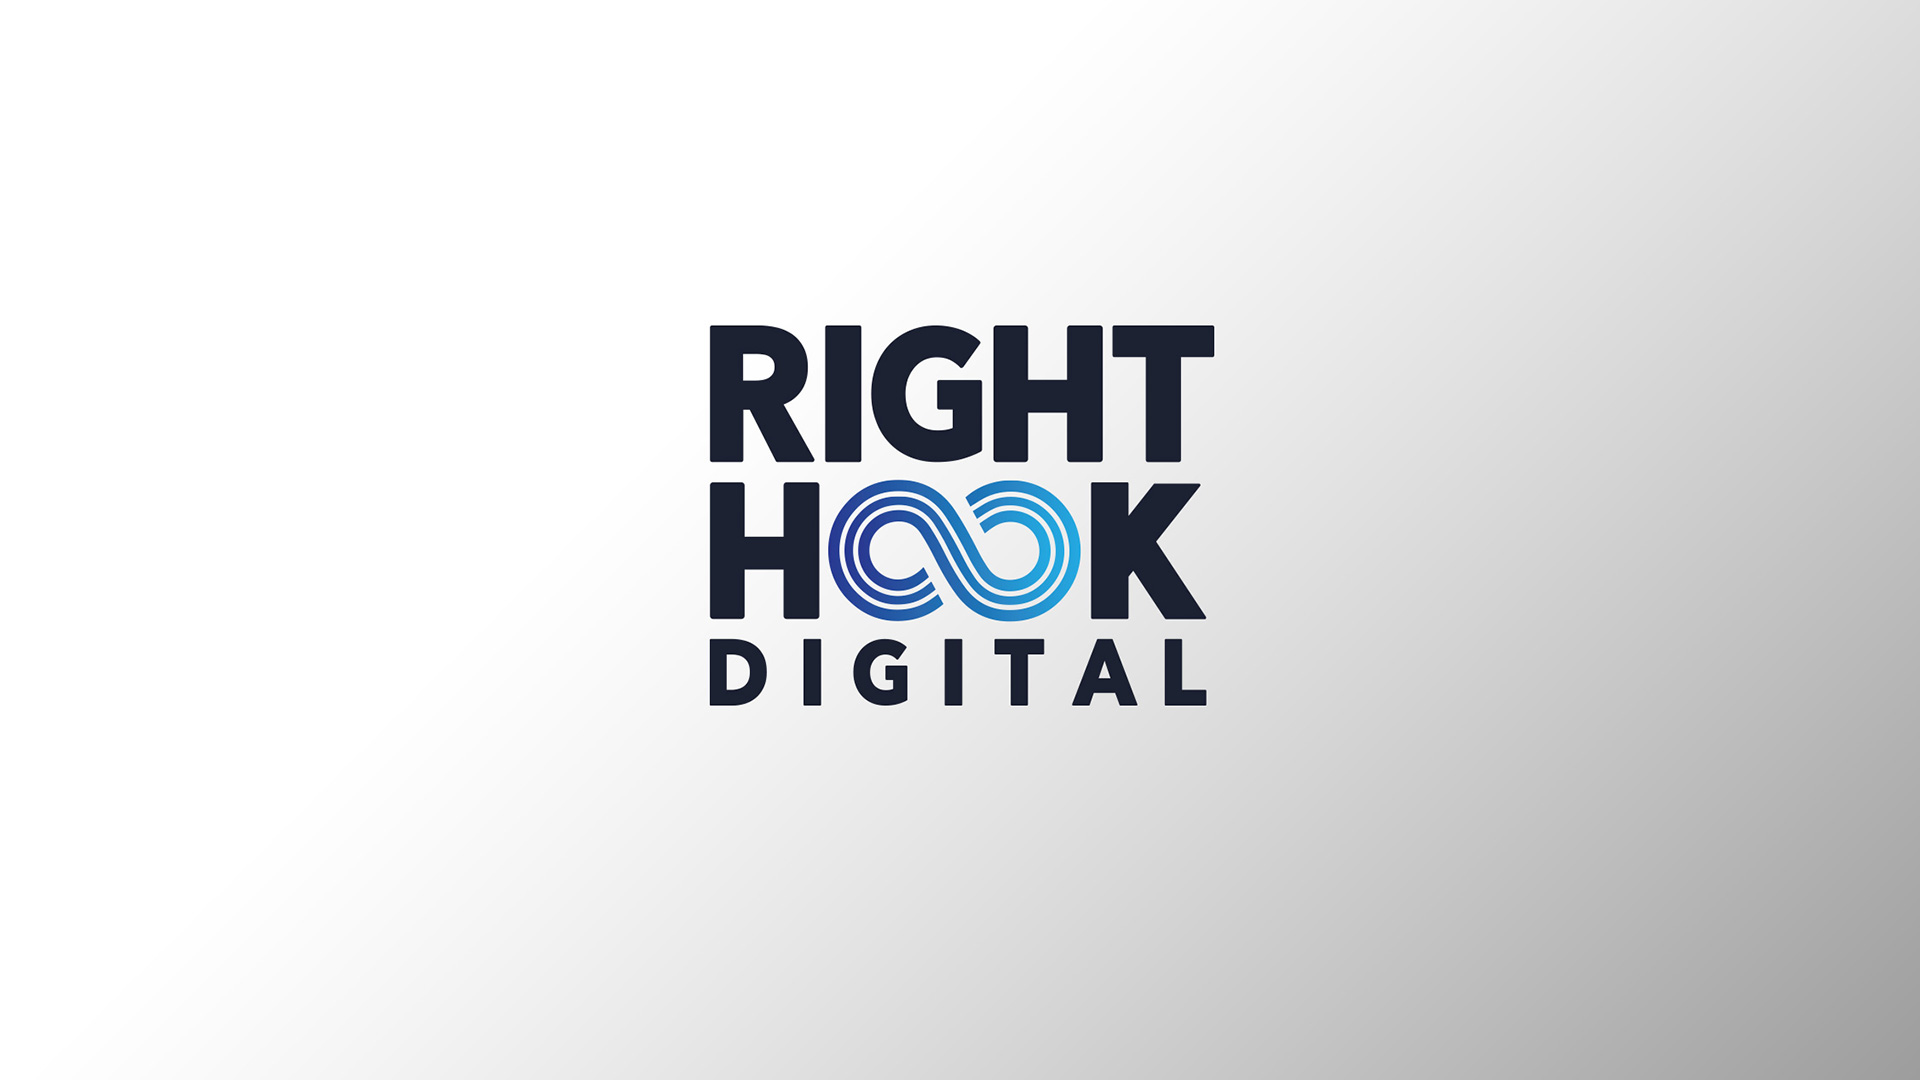 Right Hook Digital - Branding by Studio Twenty One